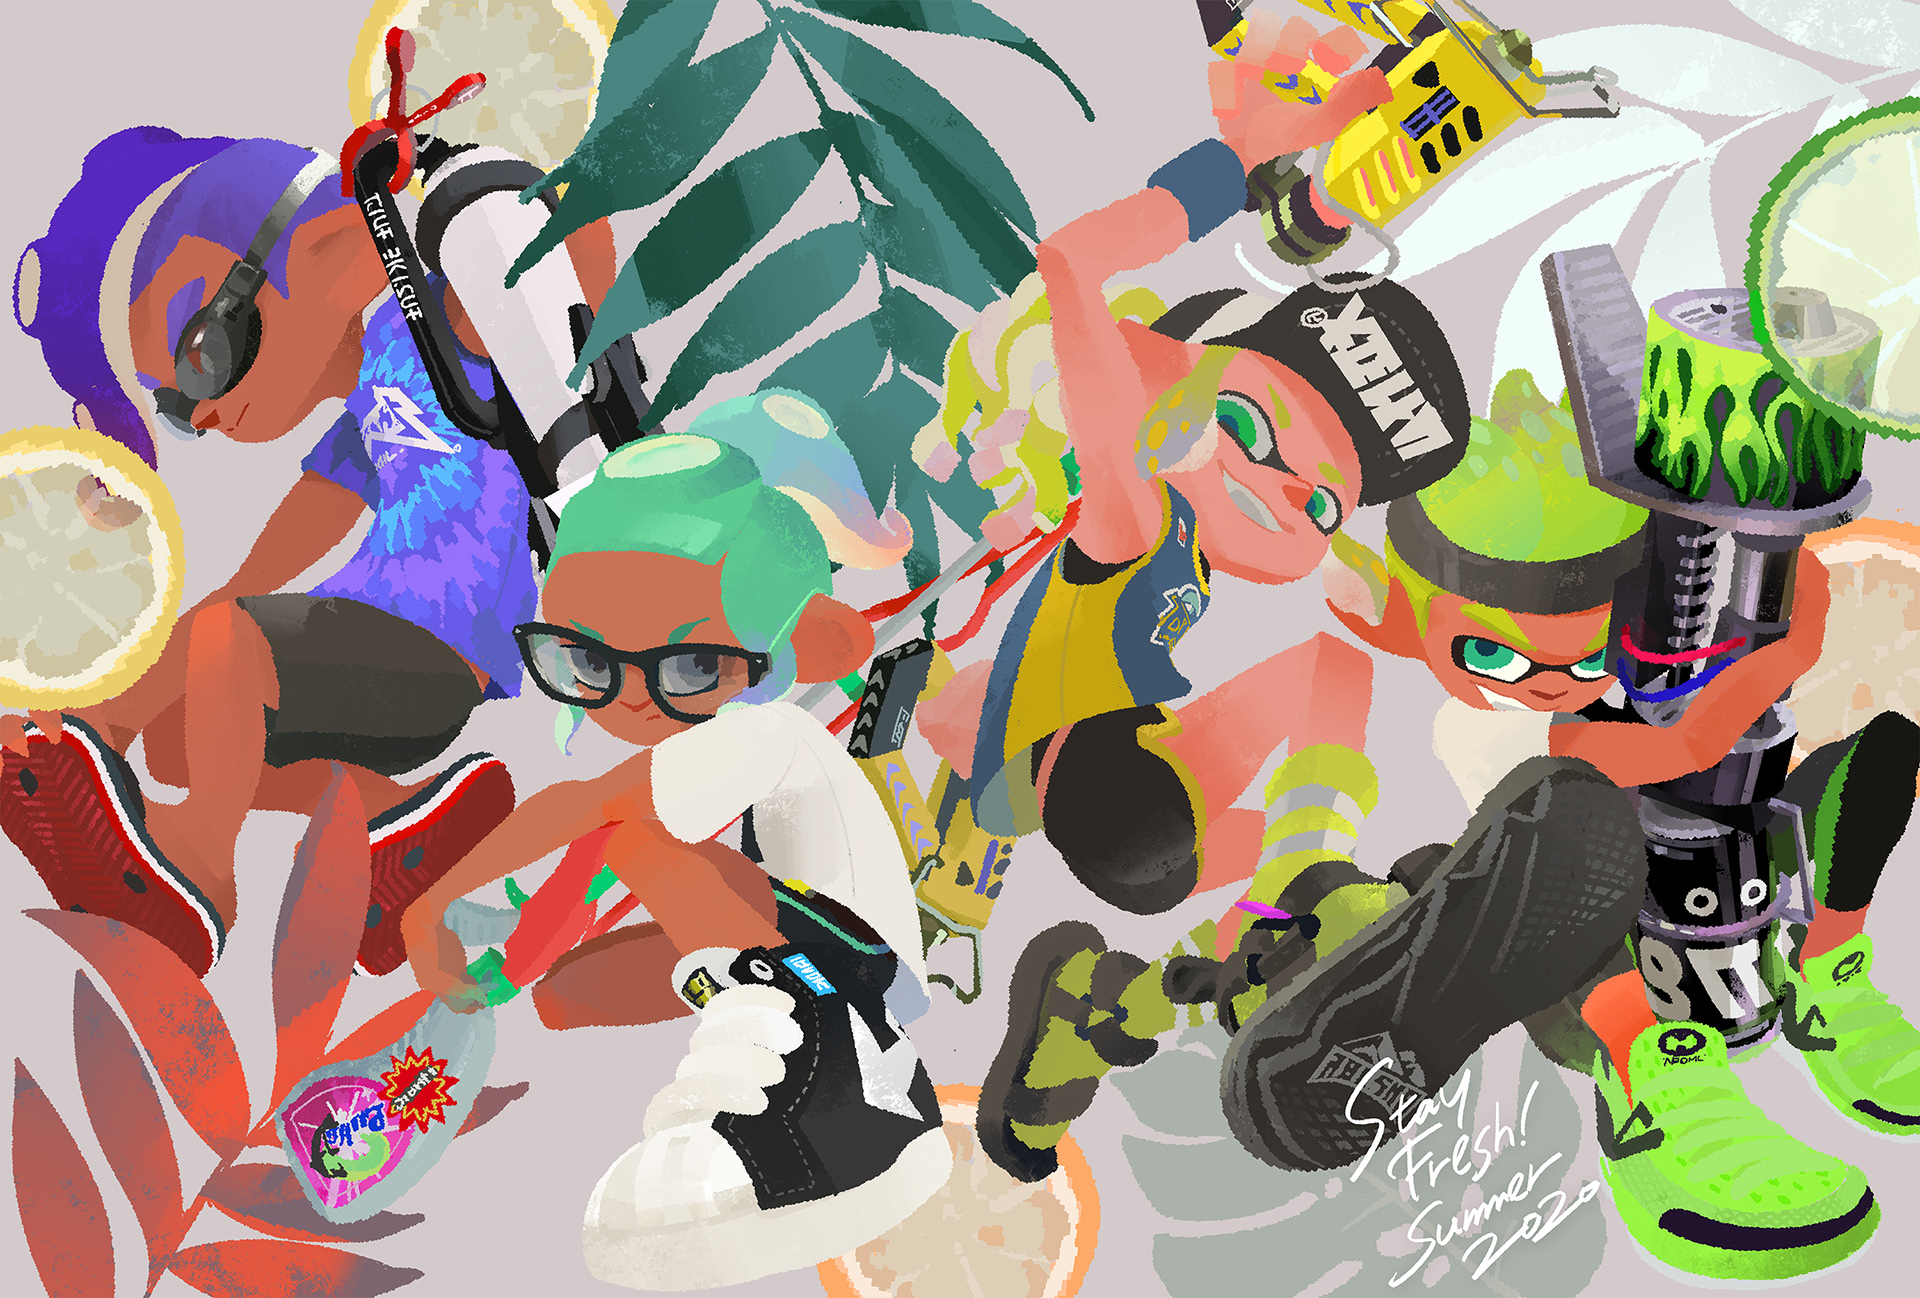 Splatoon 2 players have to duke it out in three more Splatfests screenshot